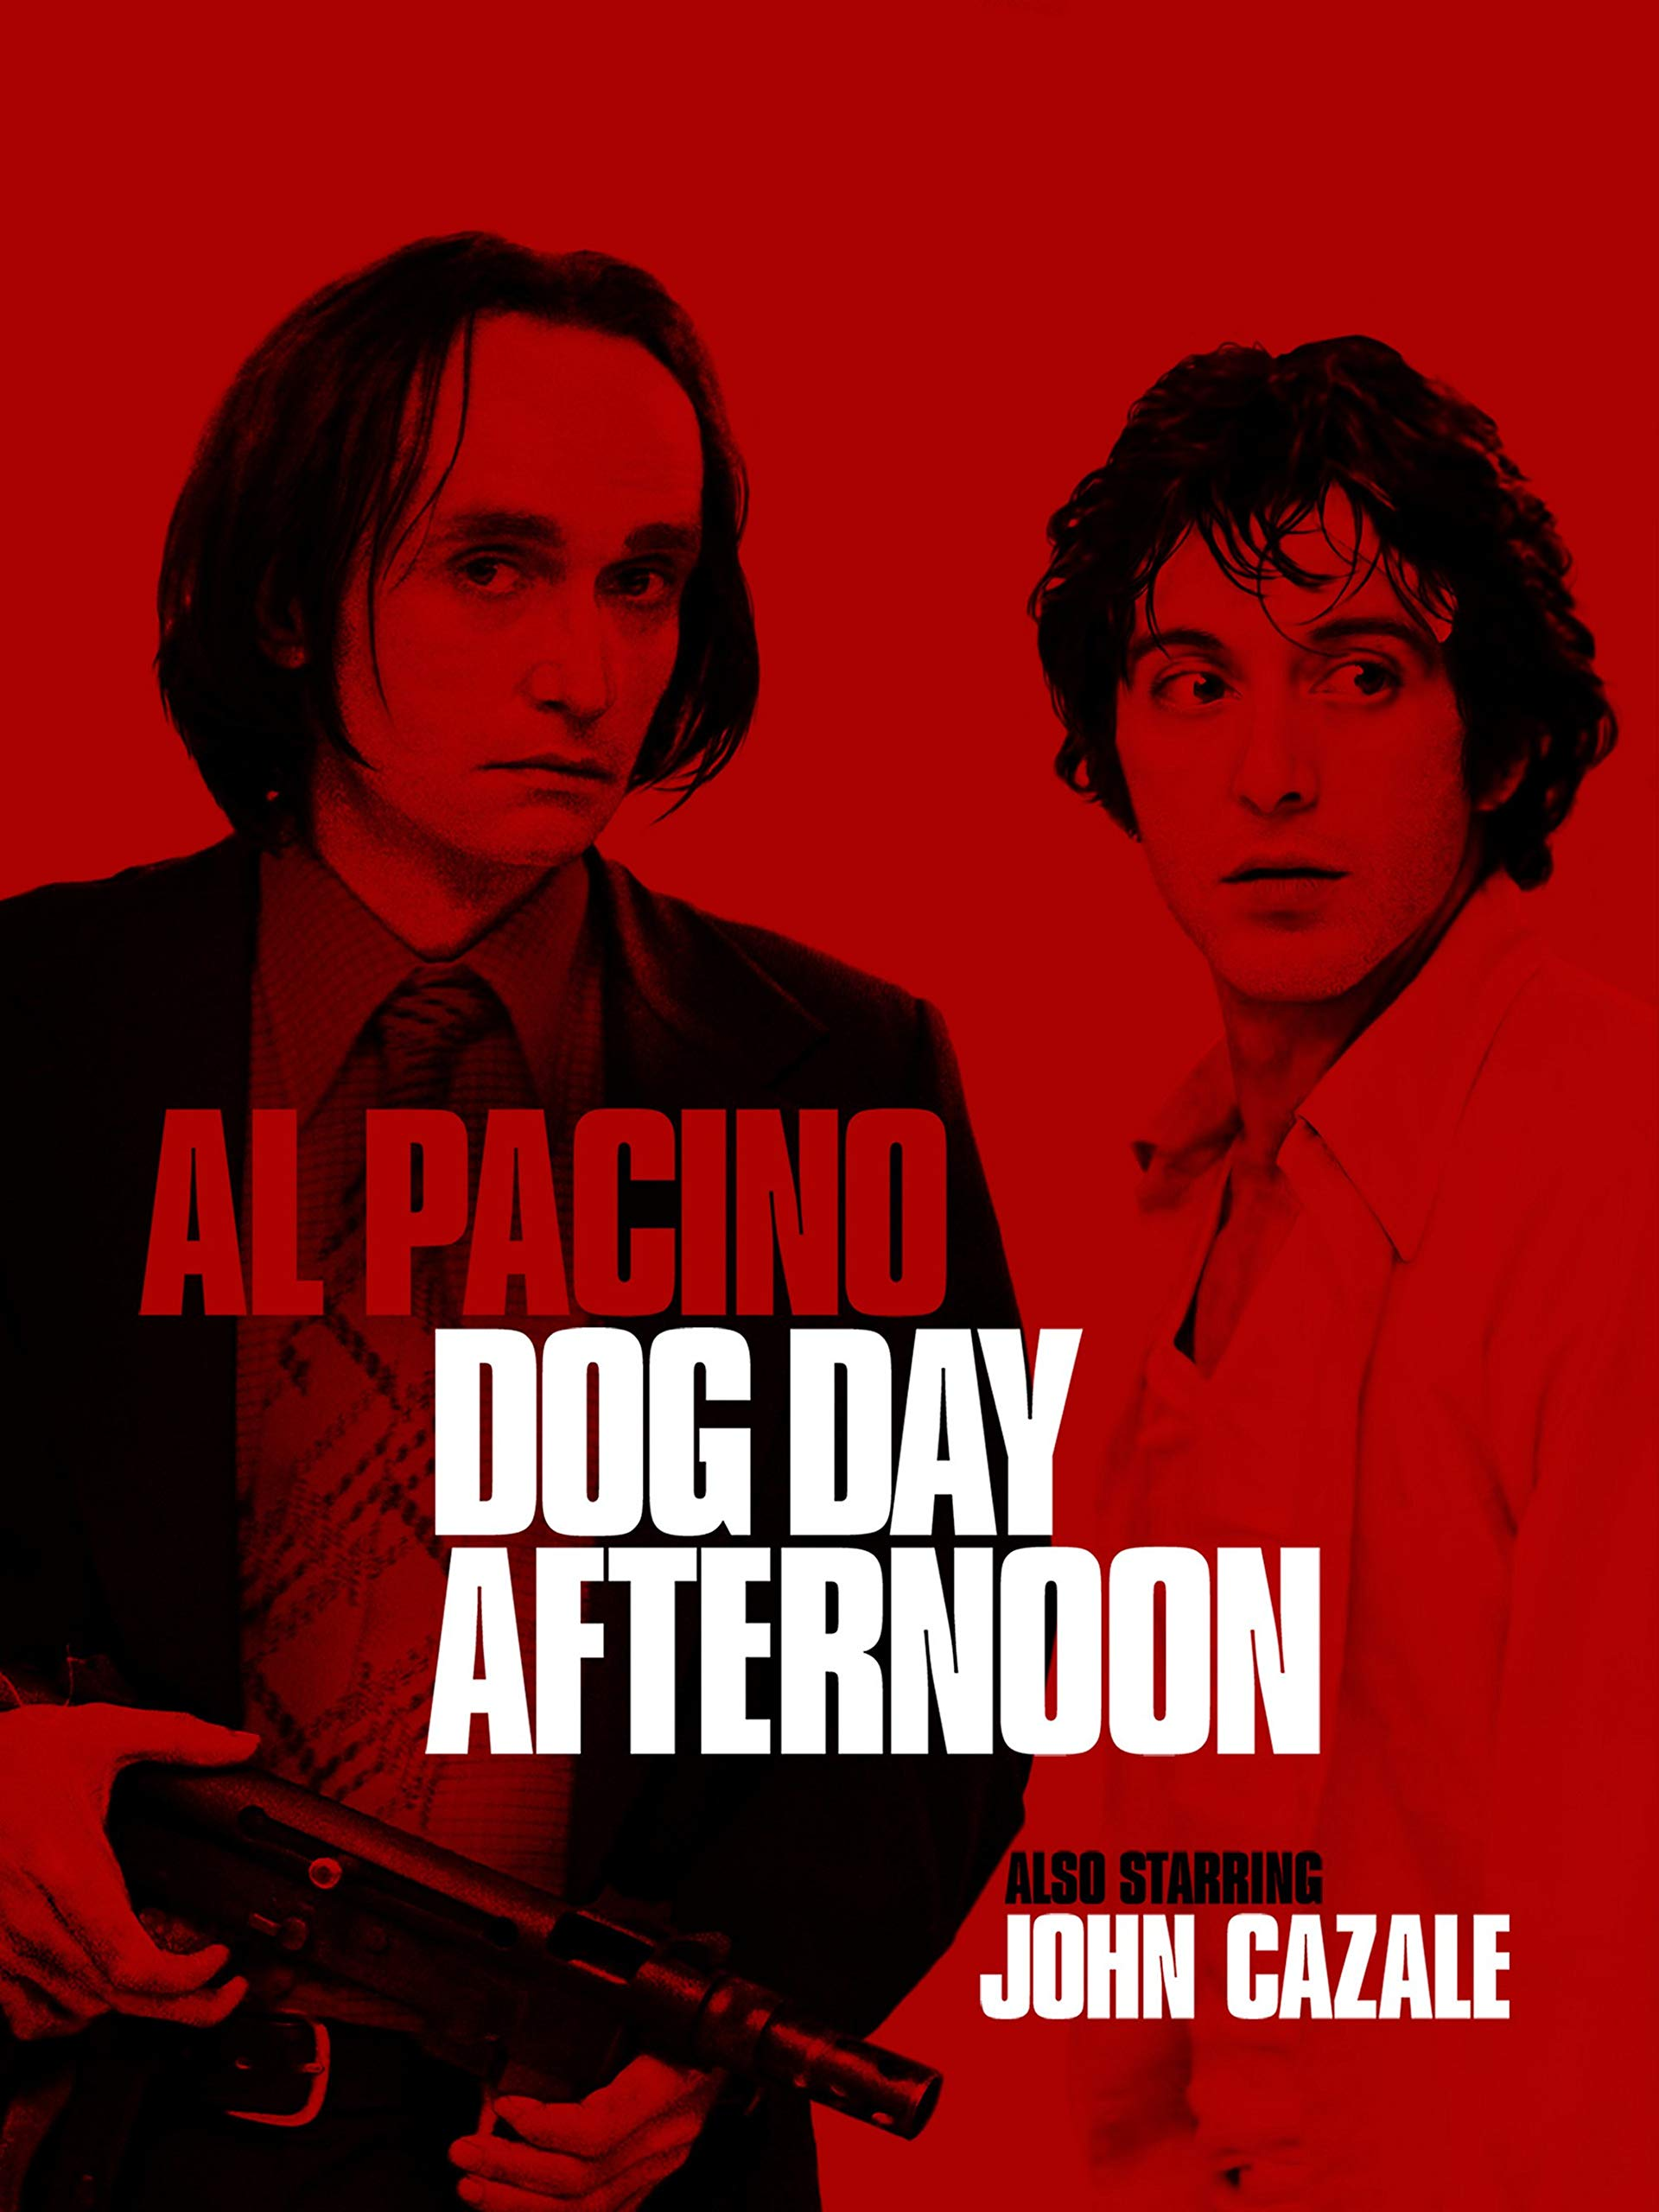 Amazoncom Watch Dog Day Afternoon Prime Video 1920x2560